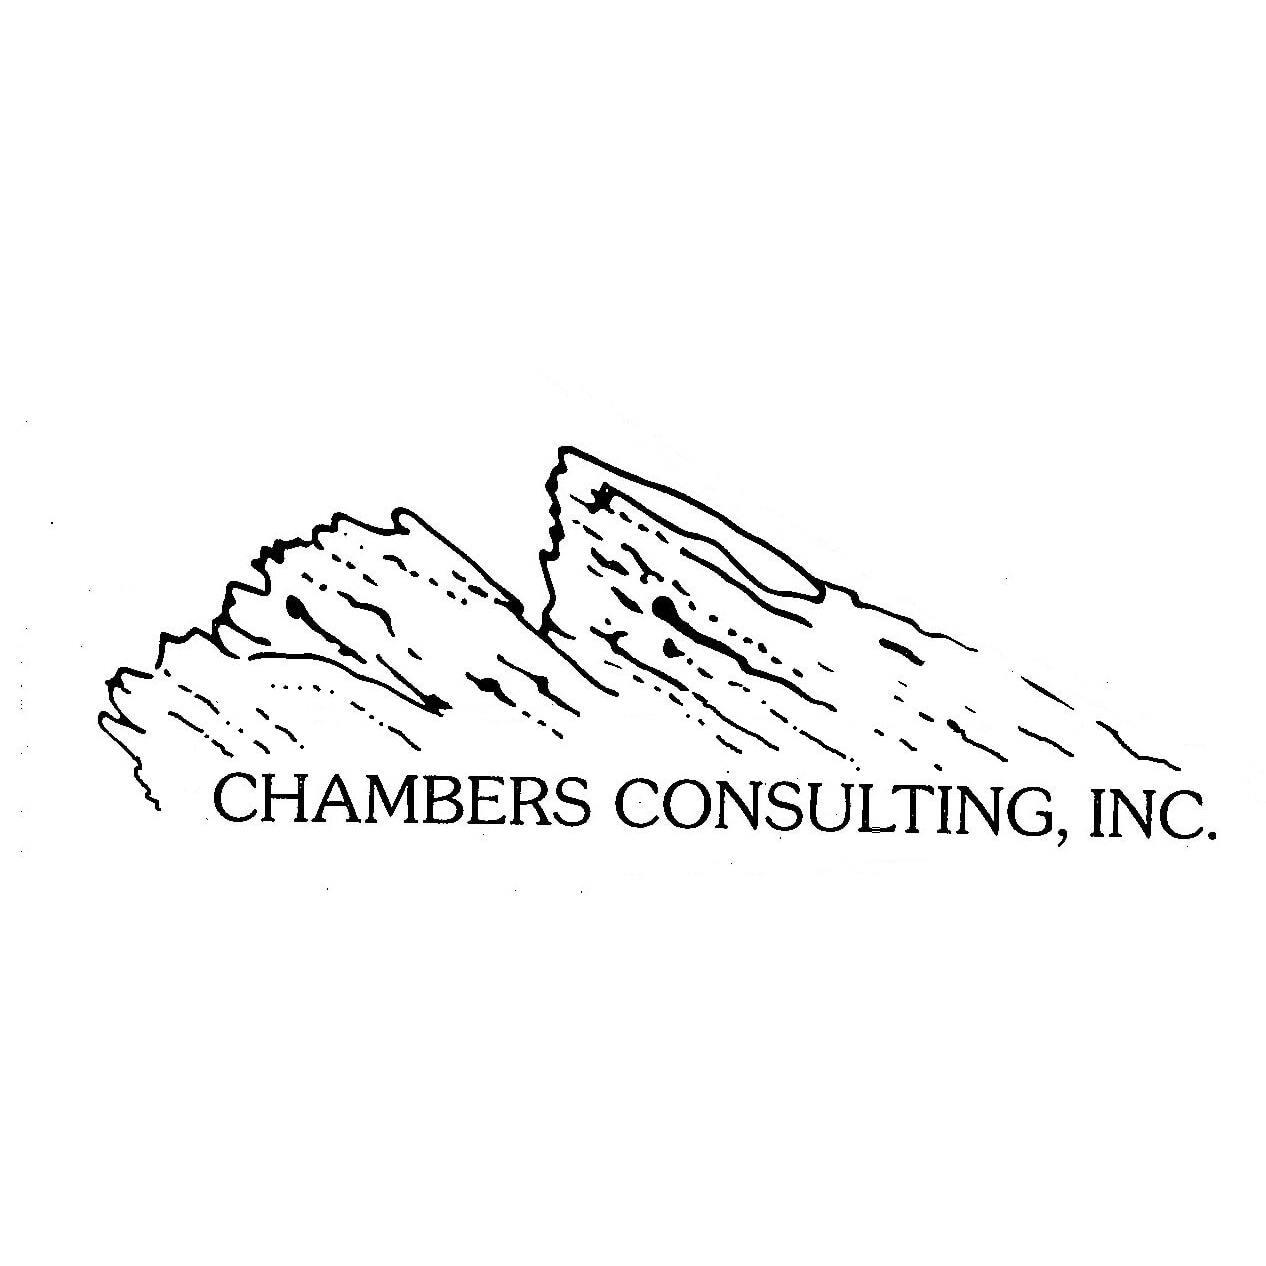 Chambers Consulting Inc.